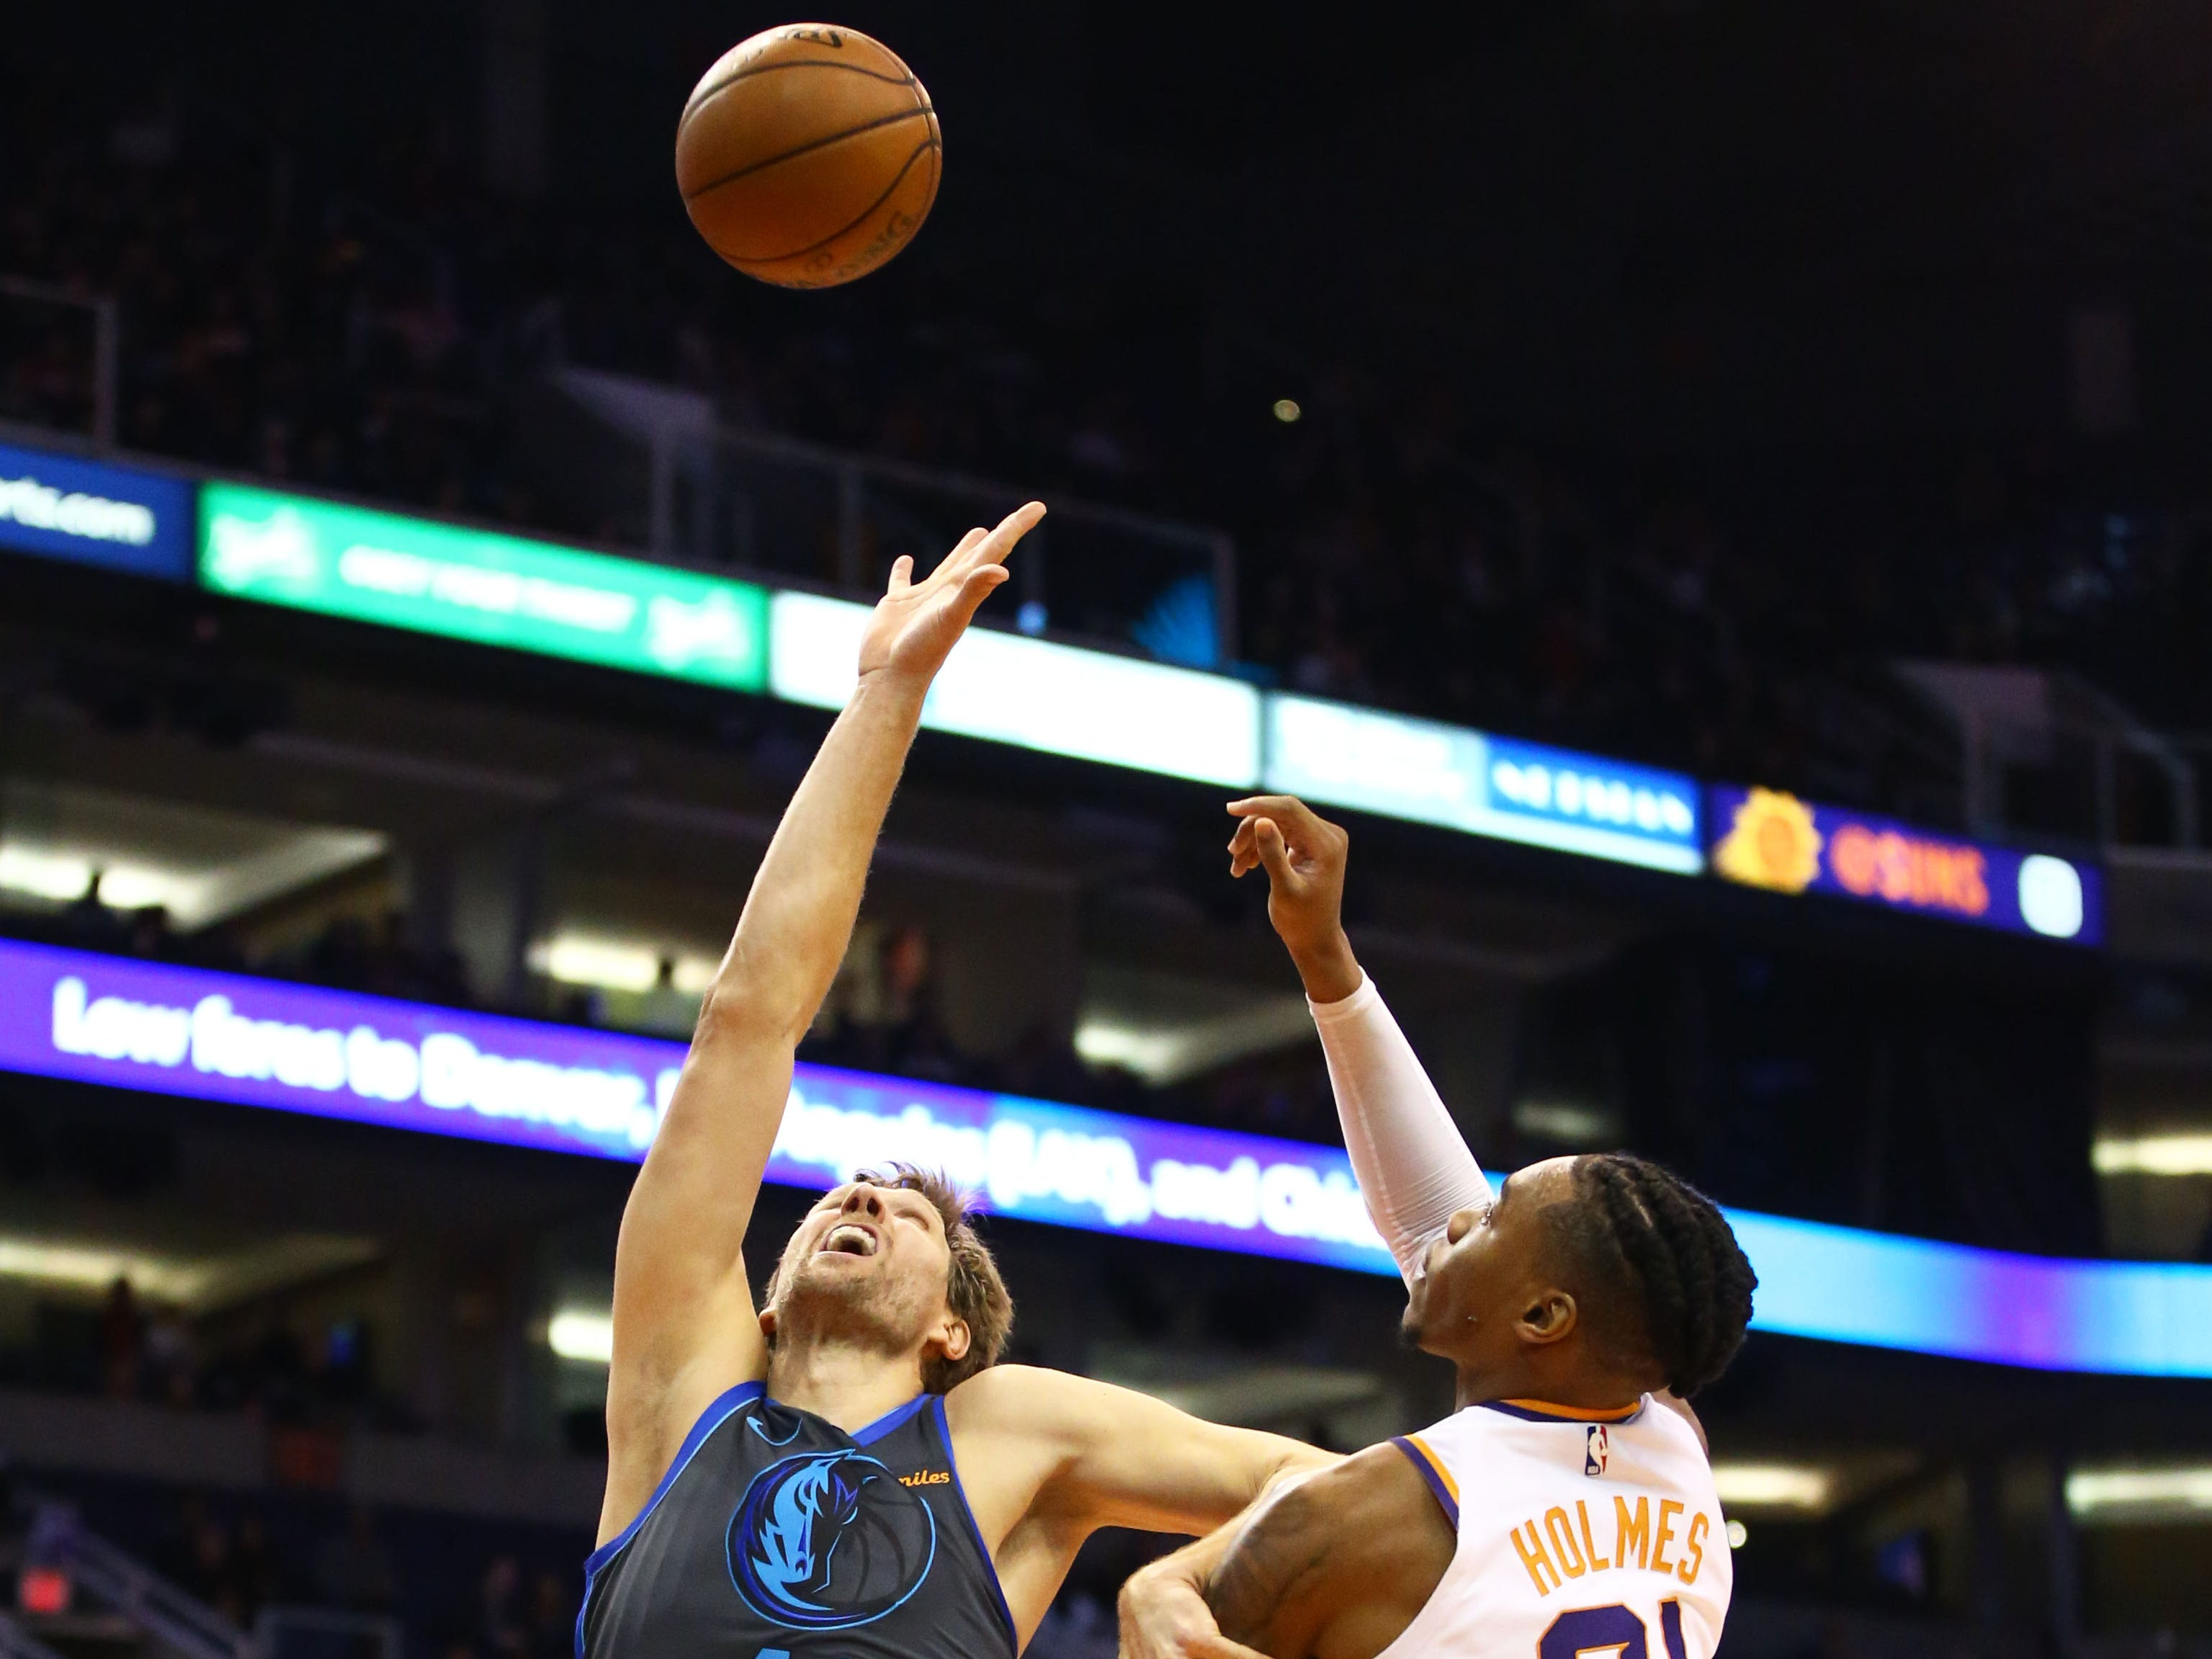 Phoenix Suns forward Richaun Holmes battles for the rebound with Dallas Mavericks' Dirk Nowitzki during a game on Dec. 13 at Talking Stick Resort Arena.